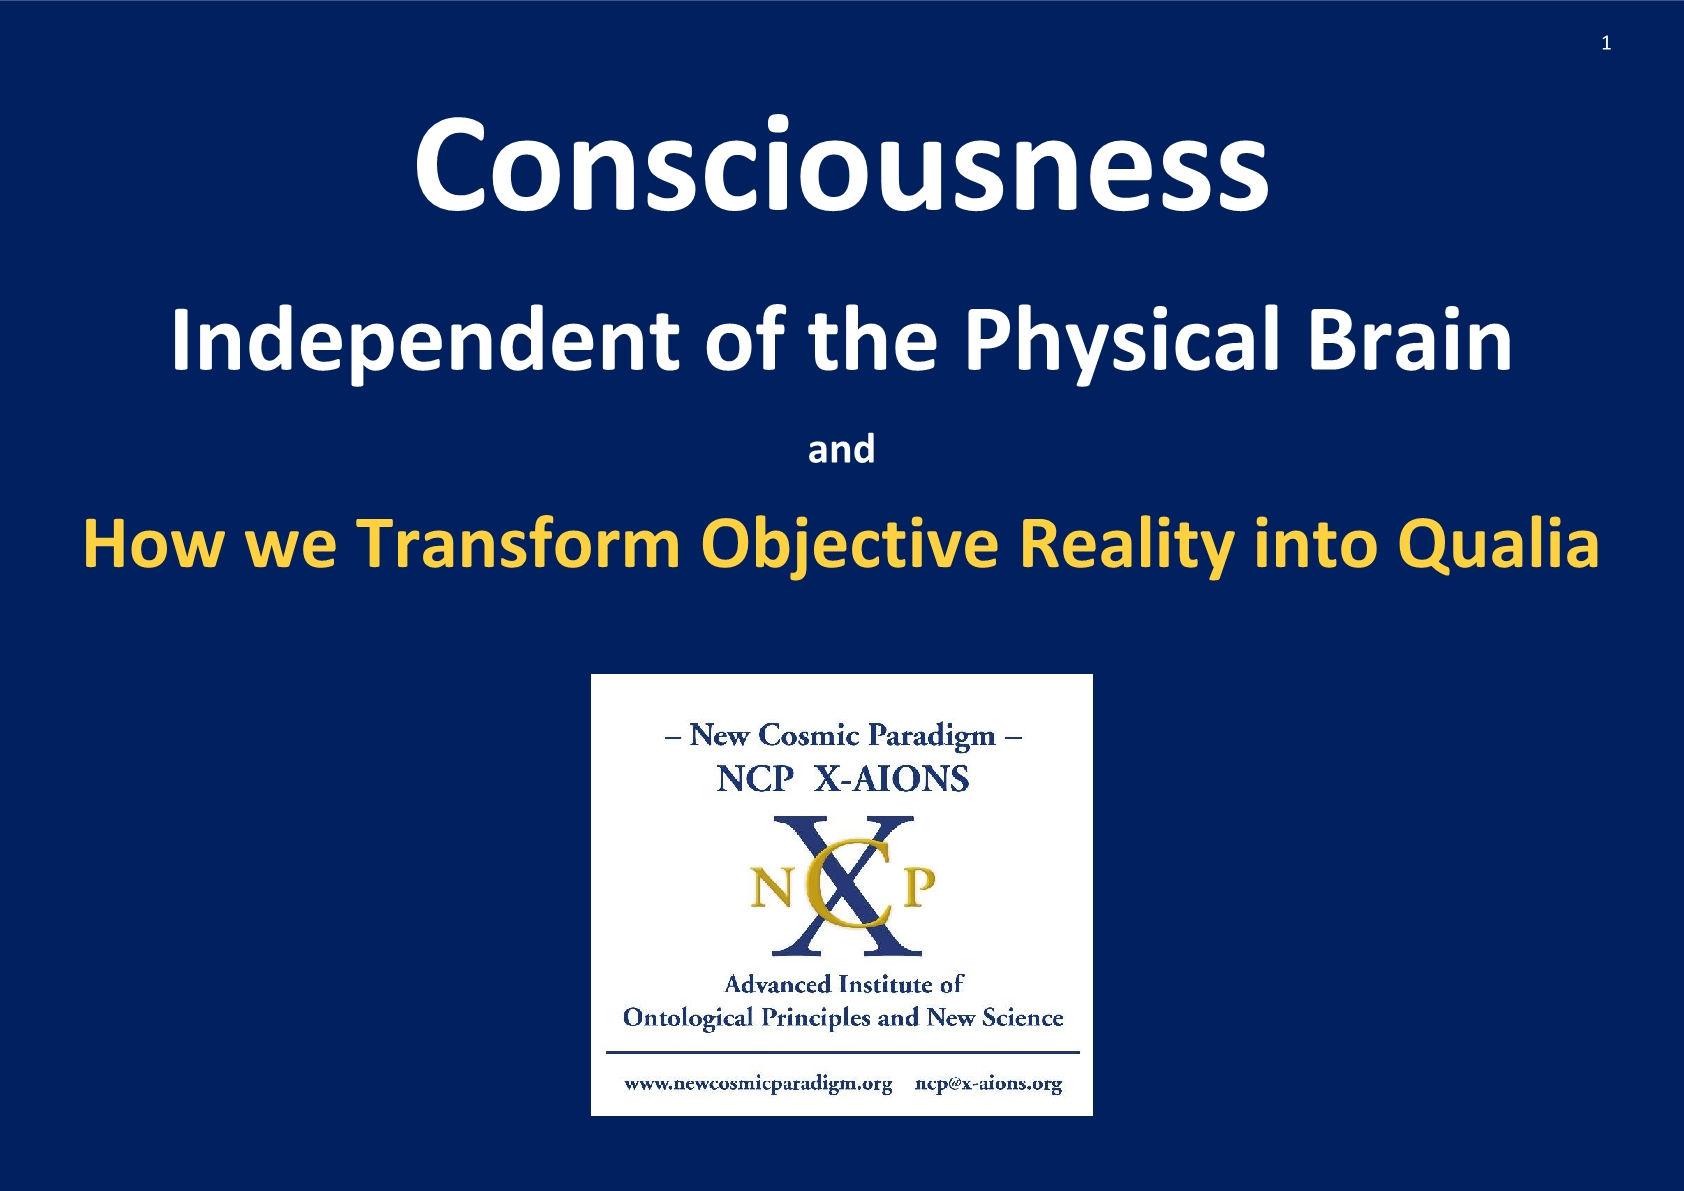 Consciousness independent of body; NCP X-AIONS